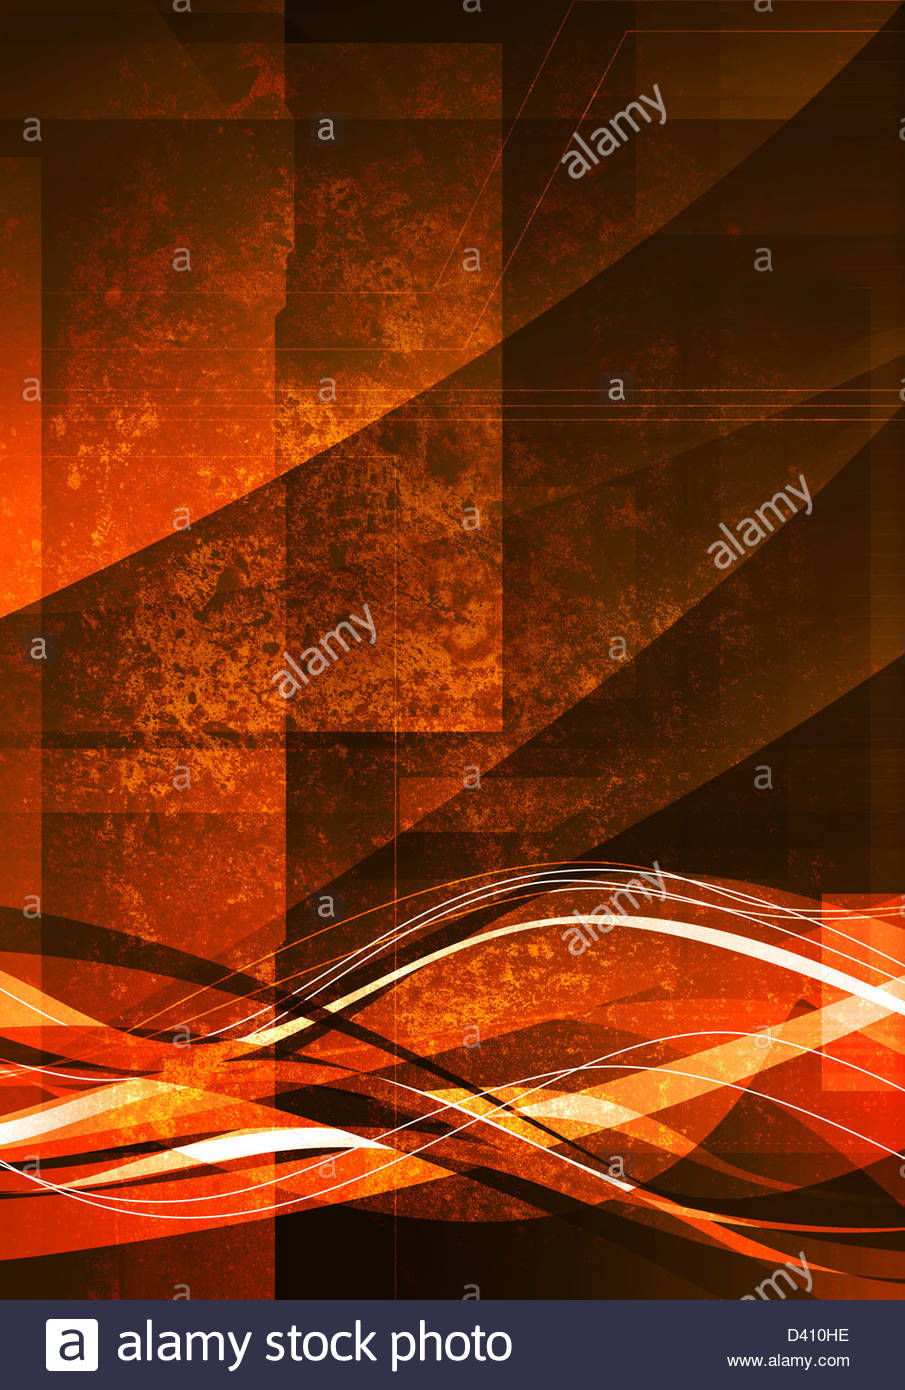 Grunge texture background Photo Stock